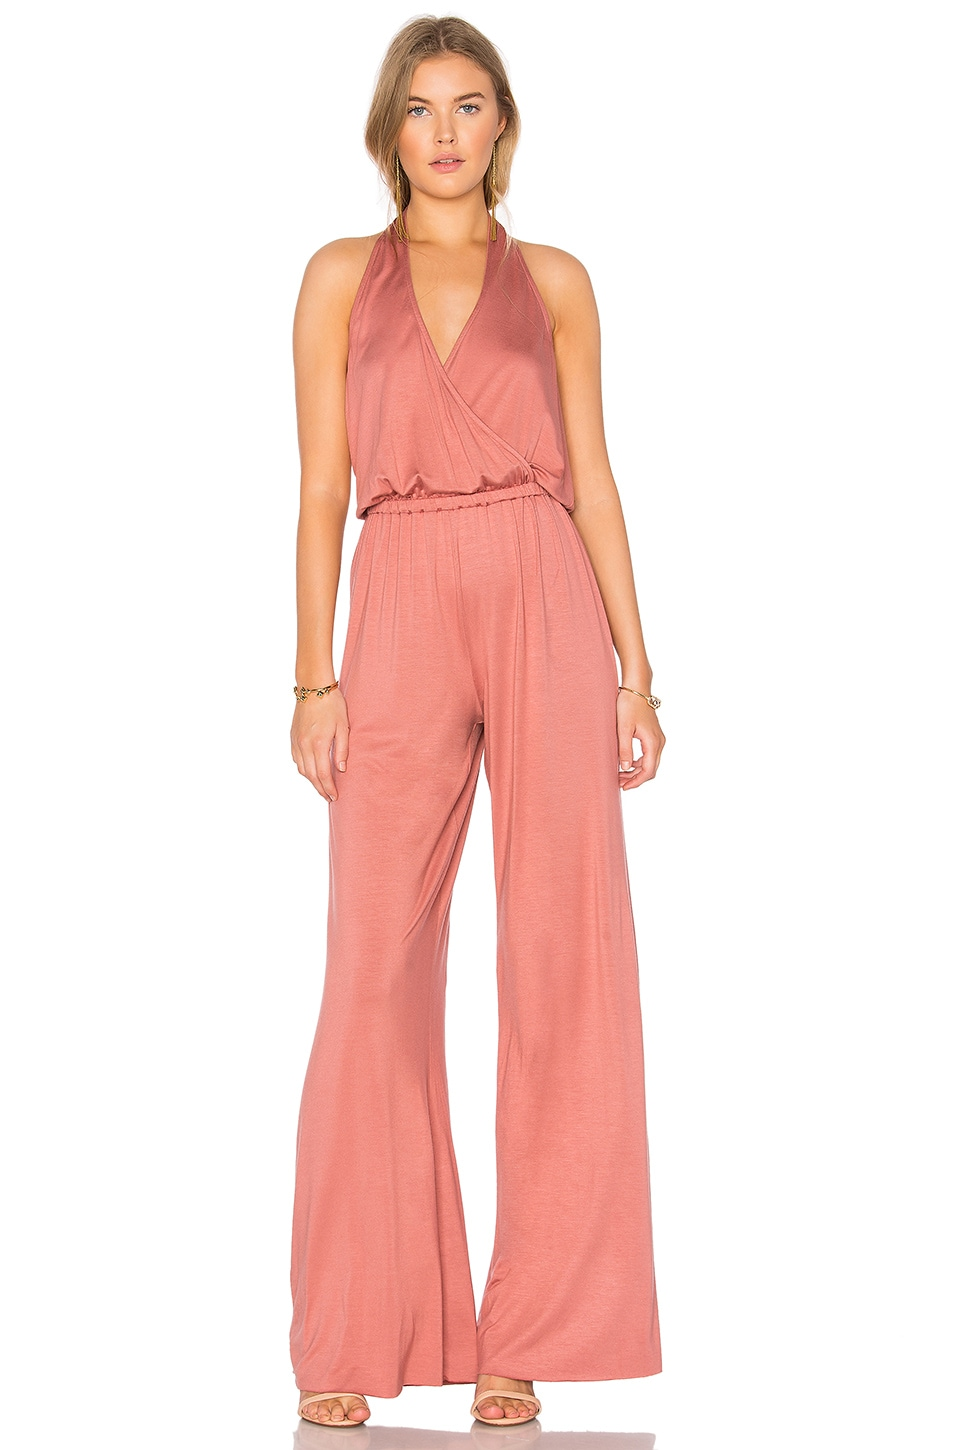 Rachel Pally Montie Jumpsuit in Adobe